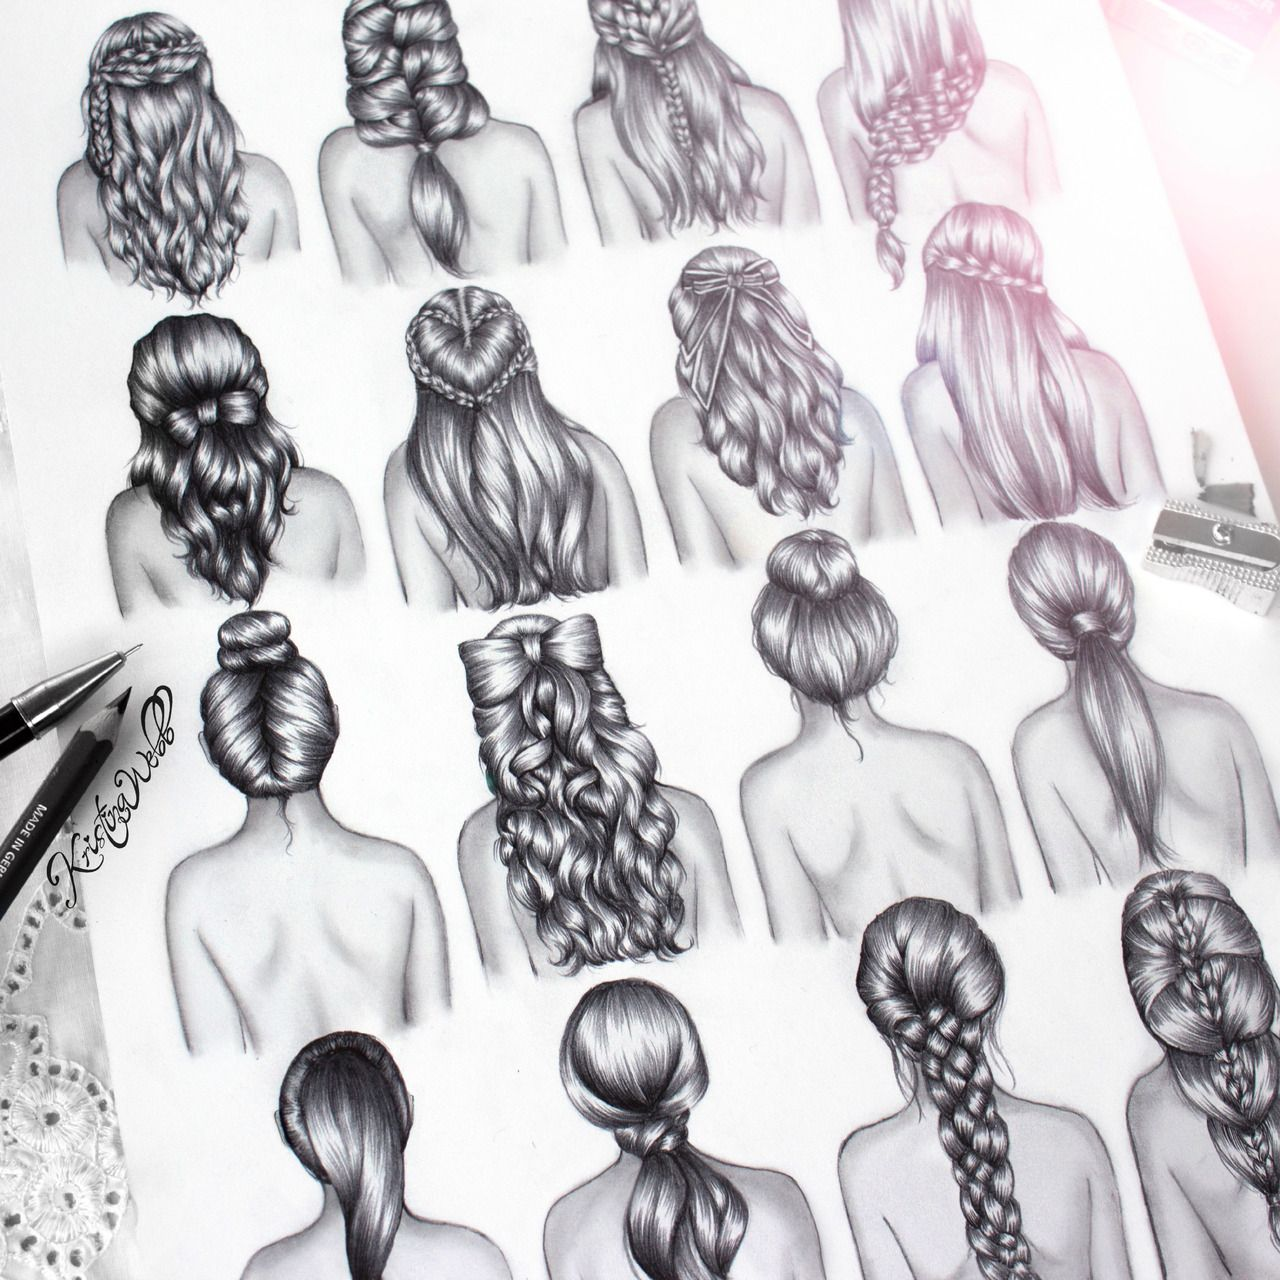 Some different hairstyles I drew )